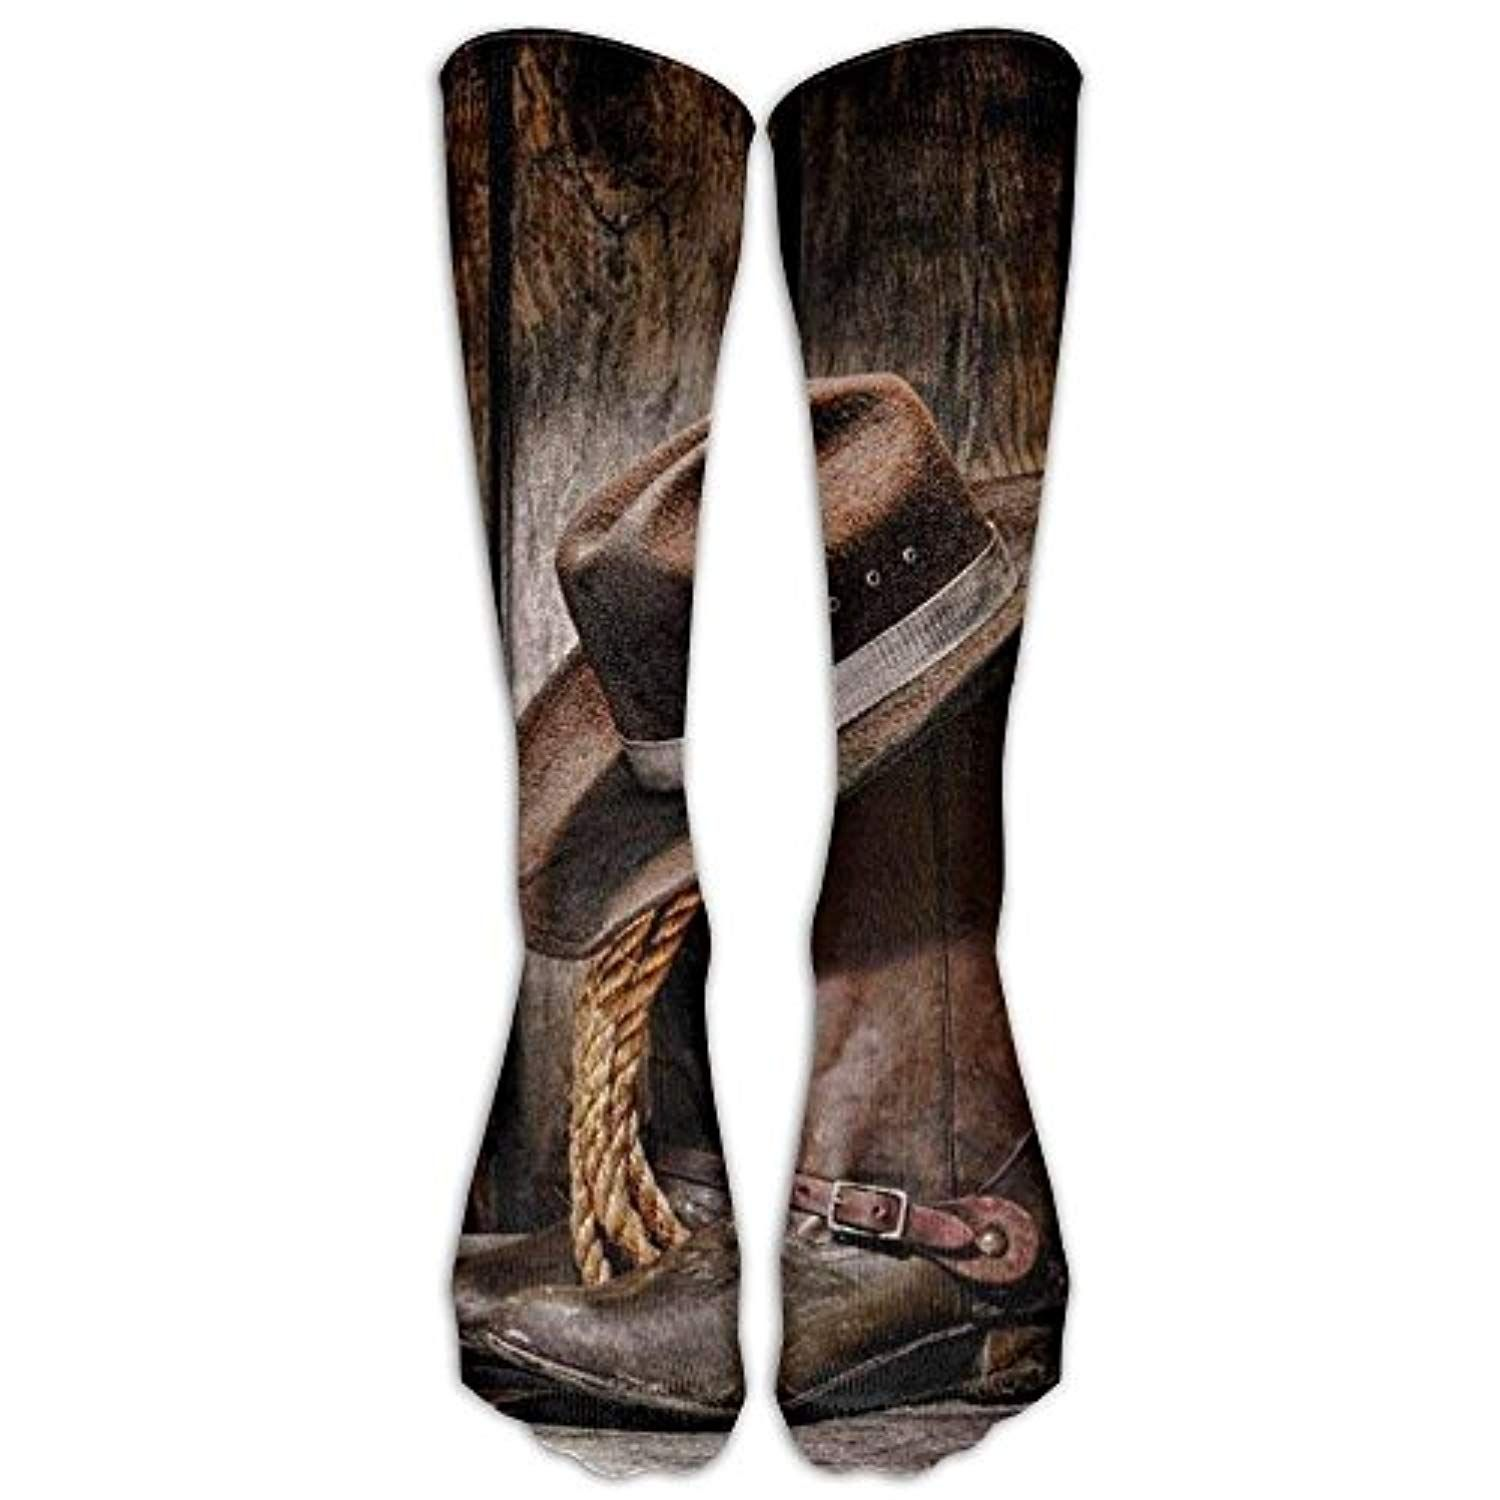 Cowboy Boots Athletic Tube Stockings Women Men Classics Knee